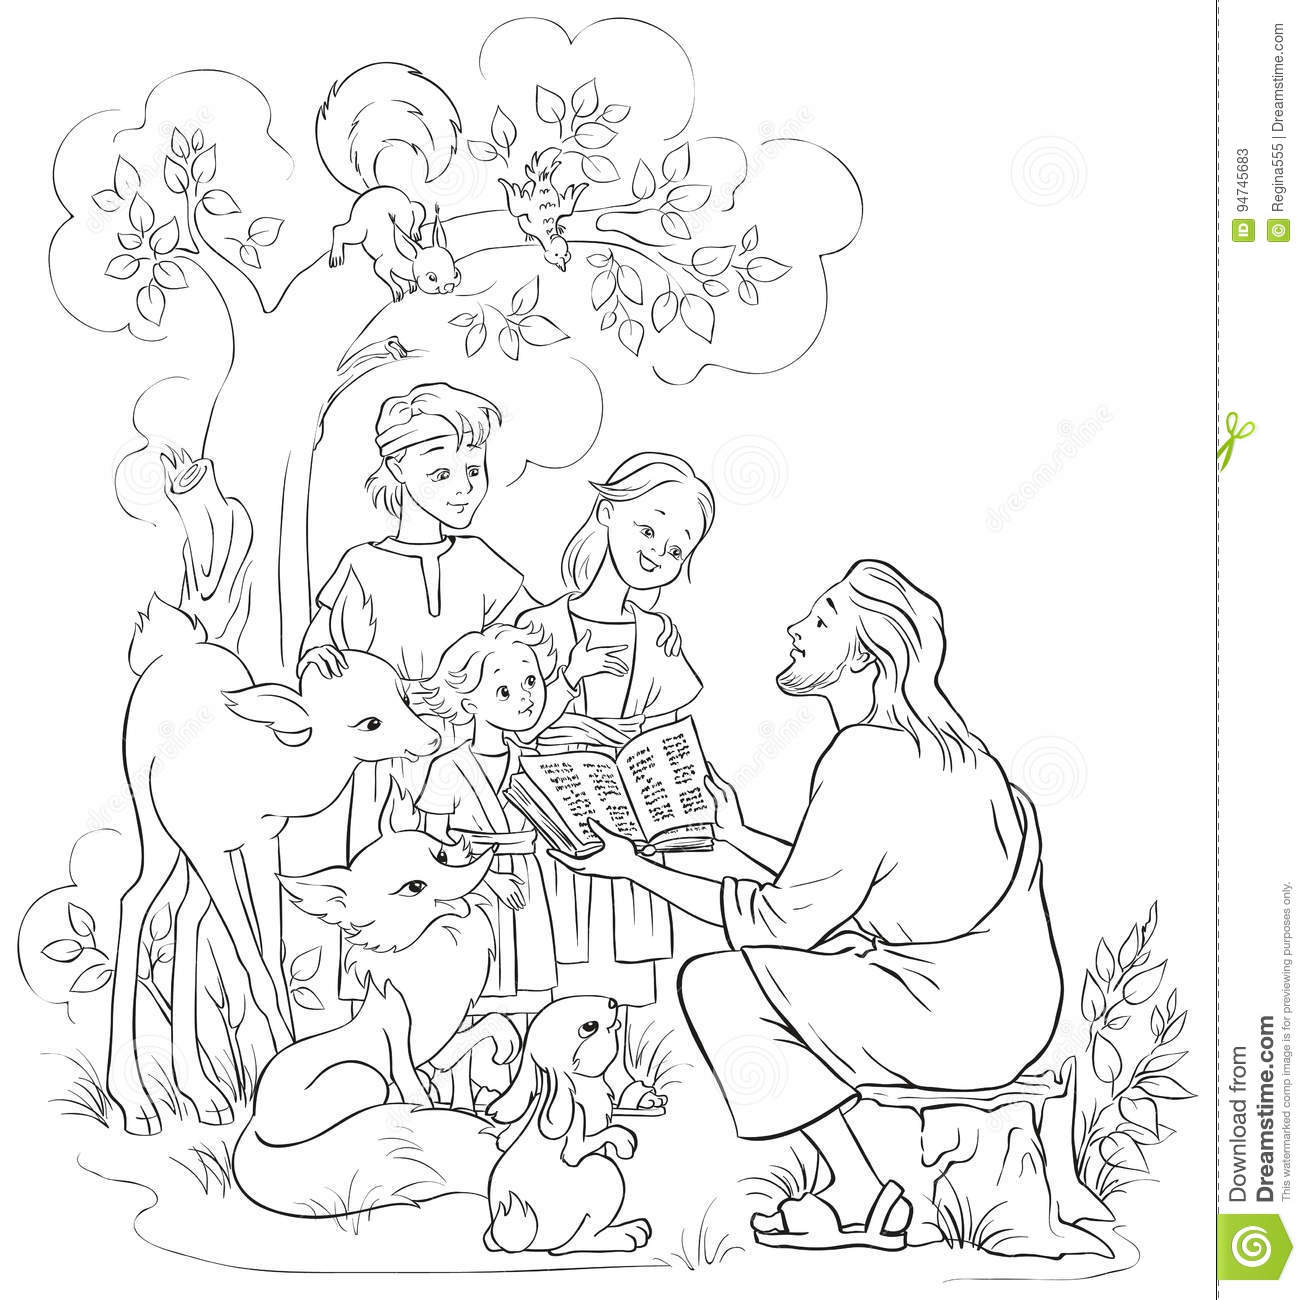 Mother mary and child jesus coloring page Vector Image | 1300x1306